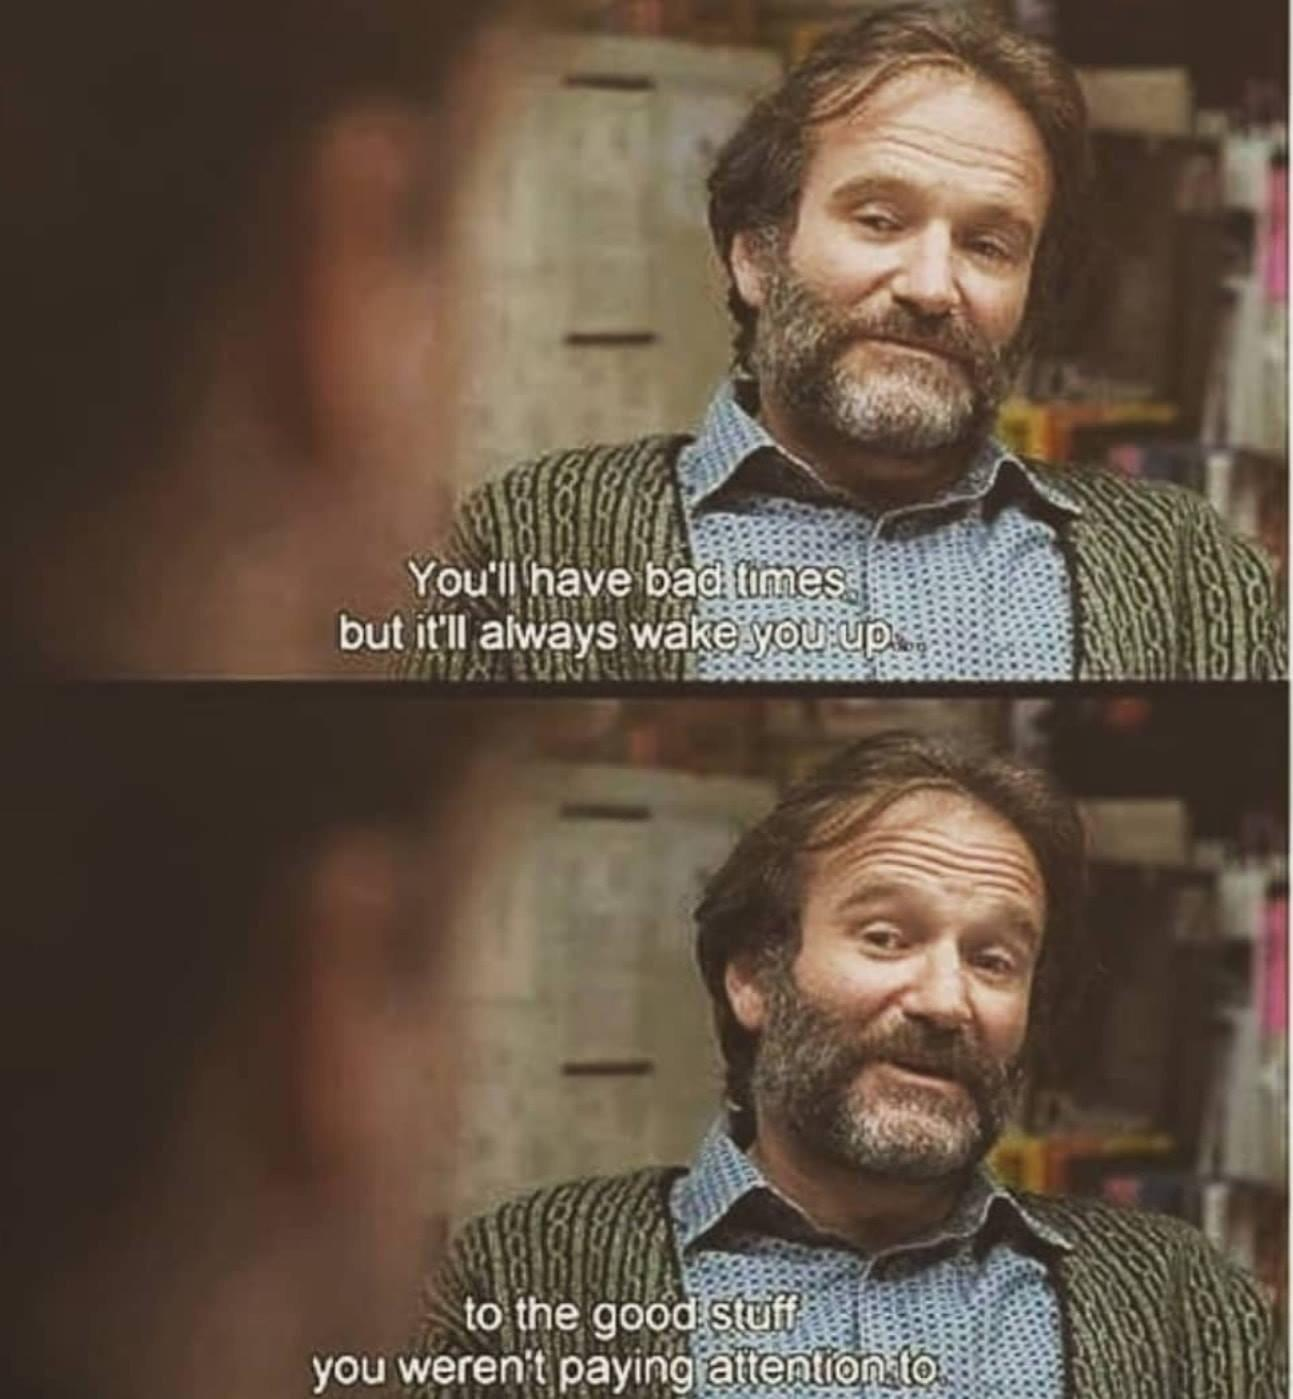 [image] Robin Williams was taken too soon. Though he will always live on through his characters. Don't let bad times get you down